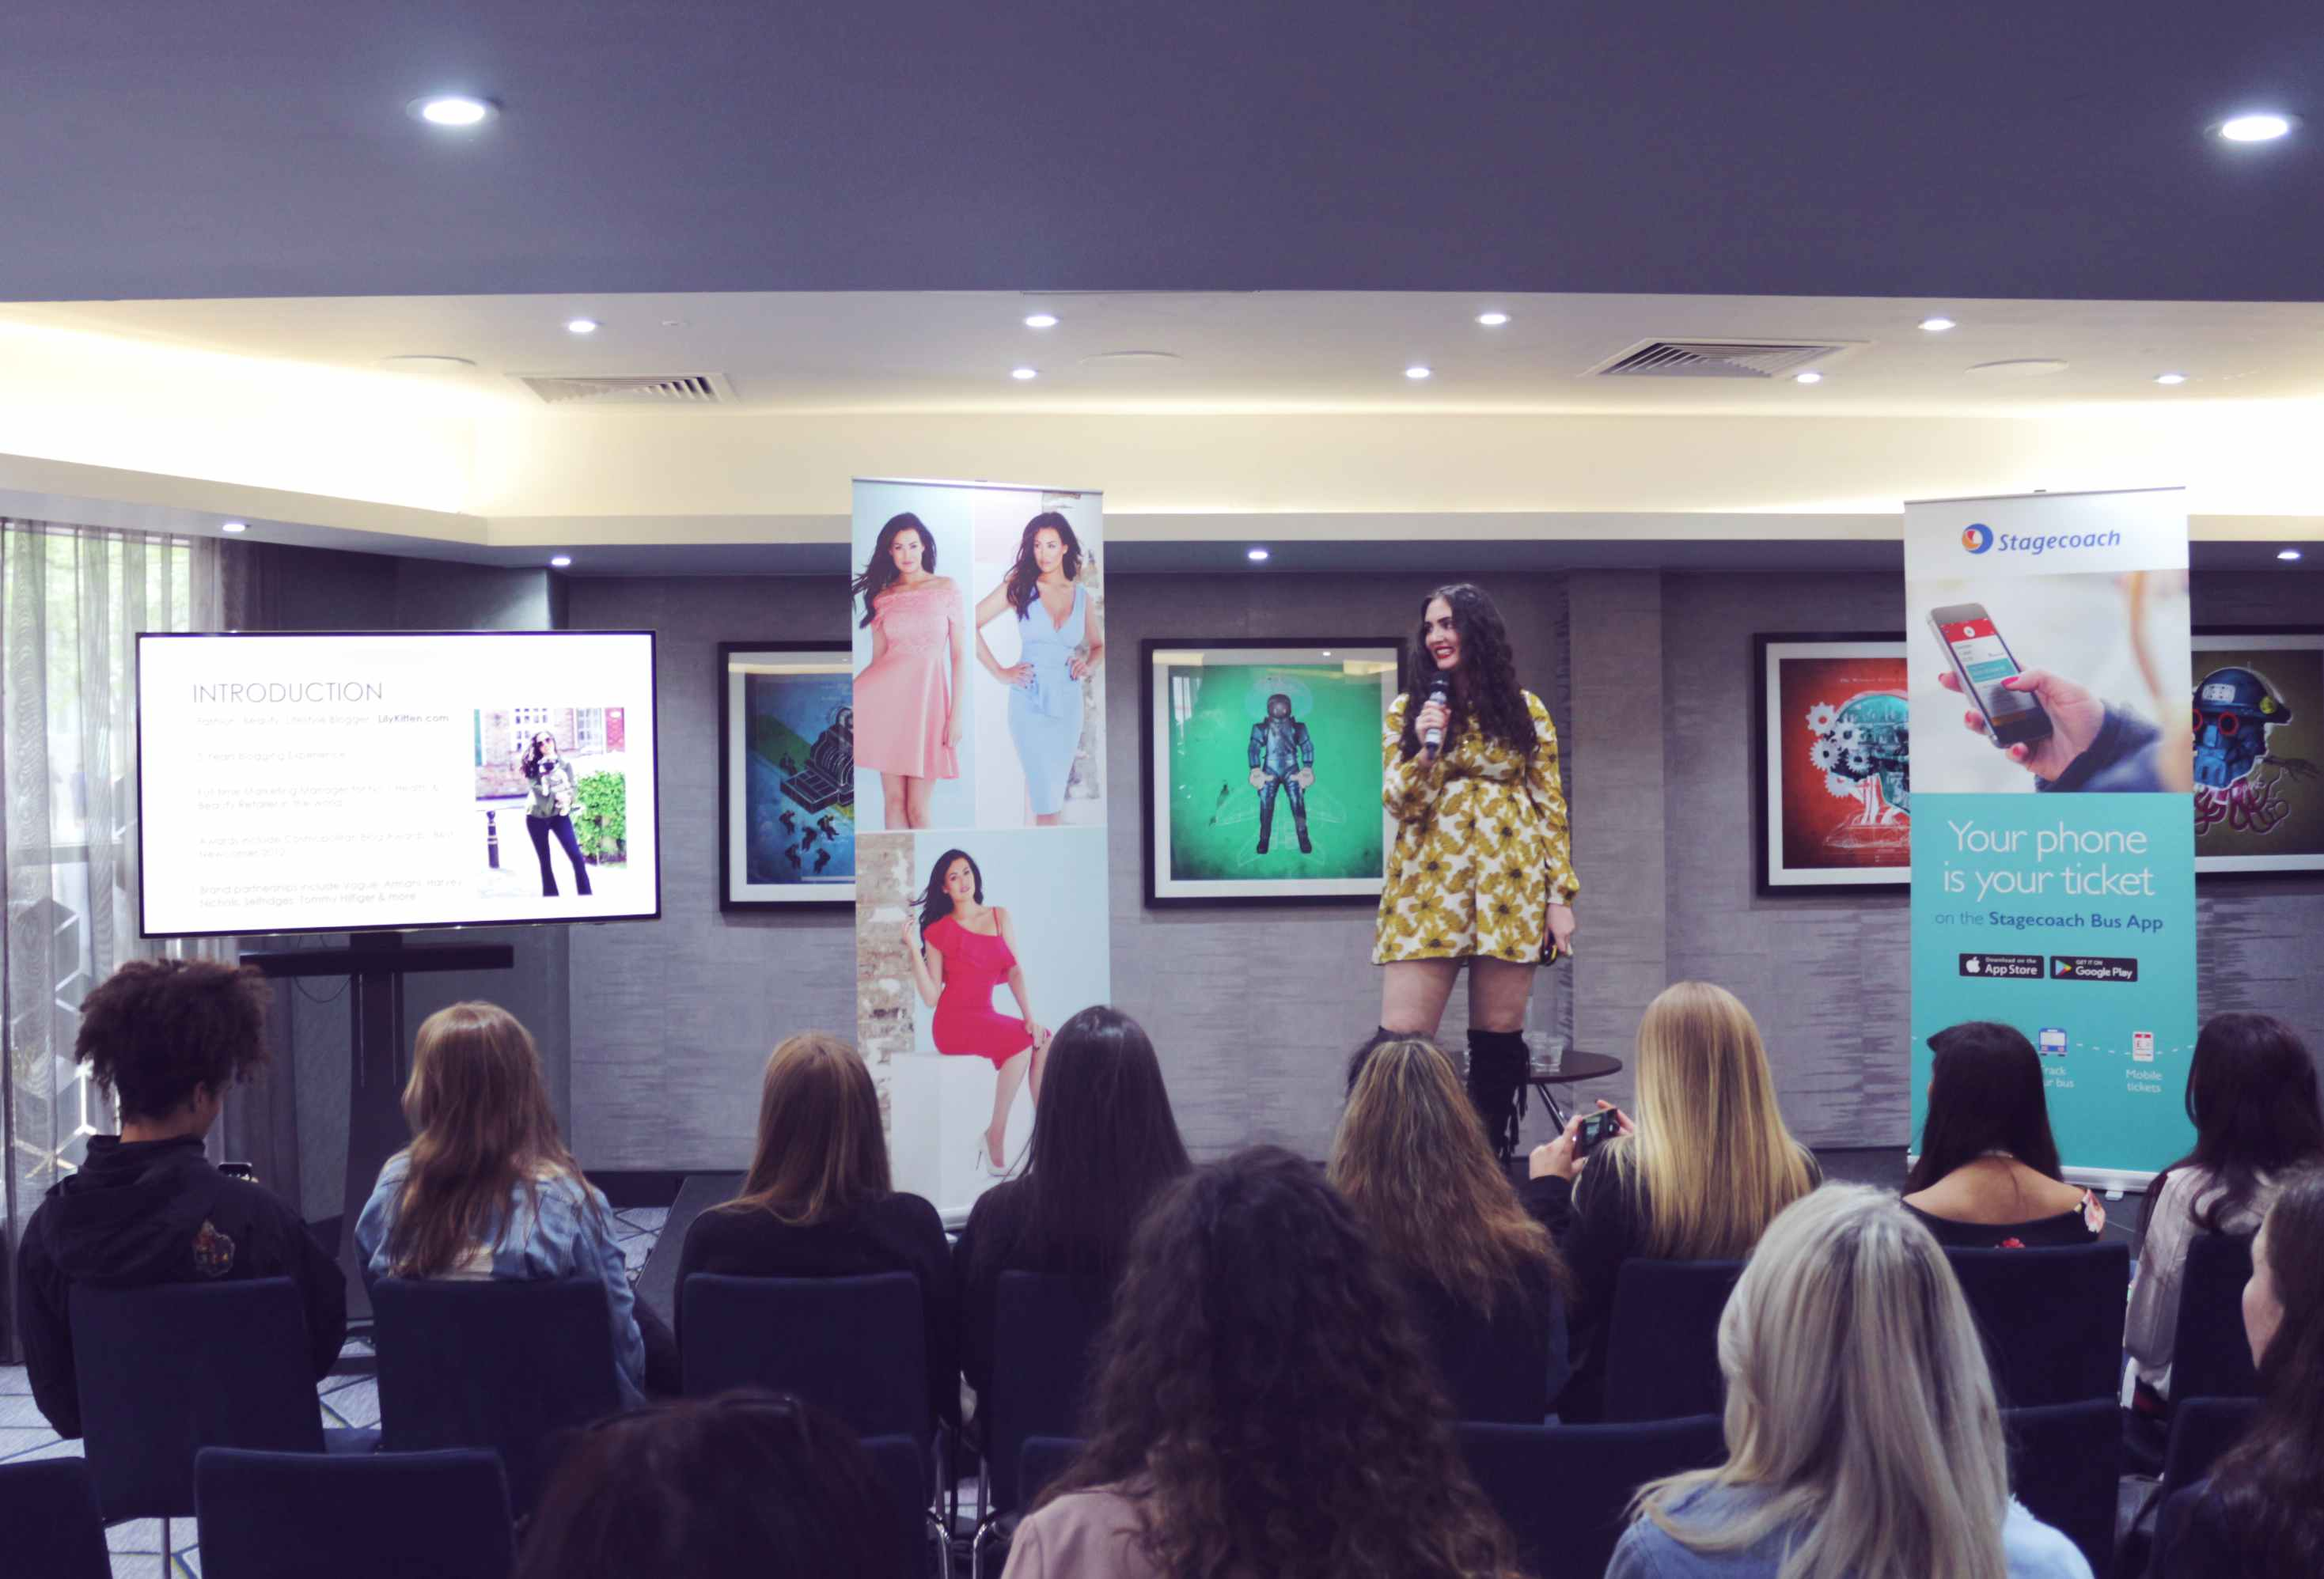 Squad On Board: Jessica Wright's Fashion Workshop With Stagecoach